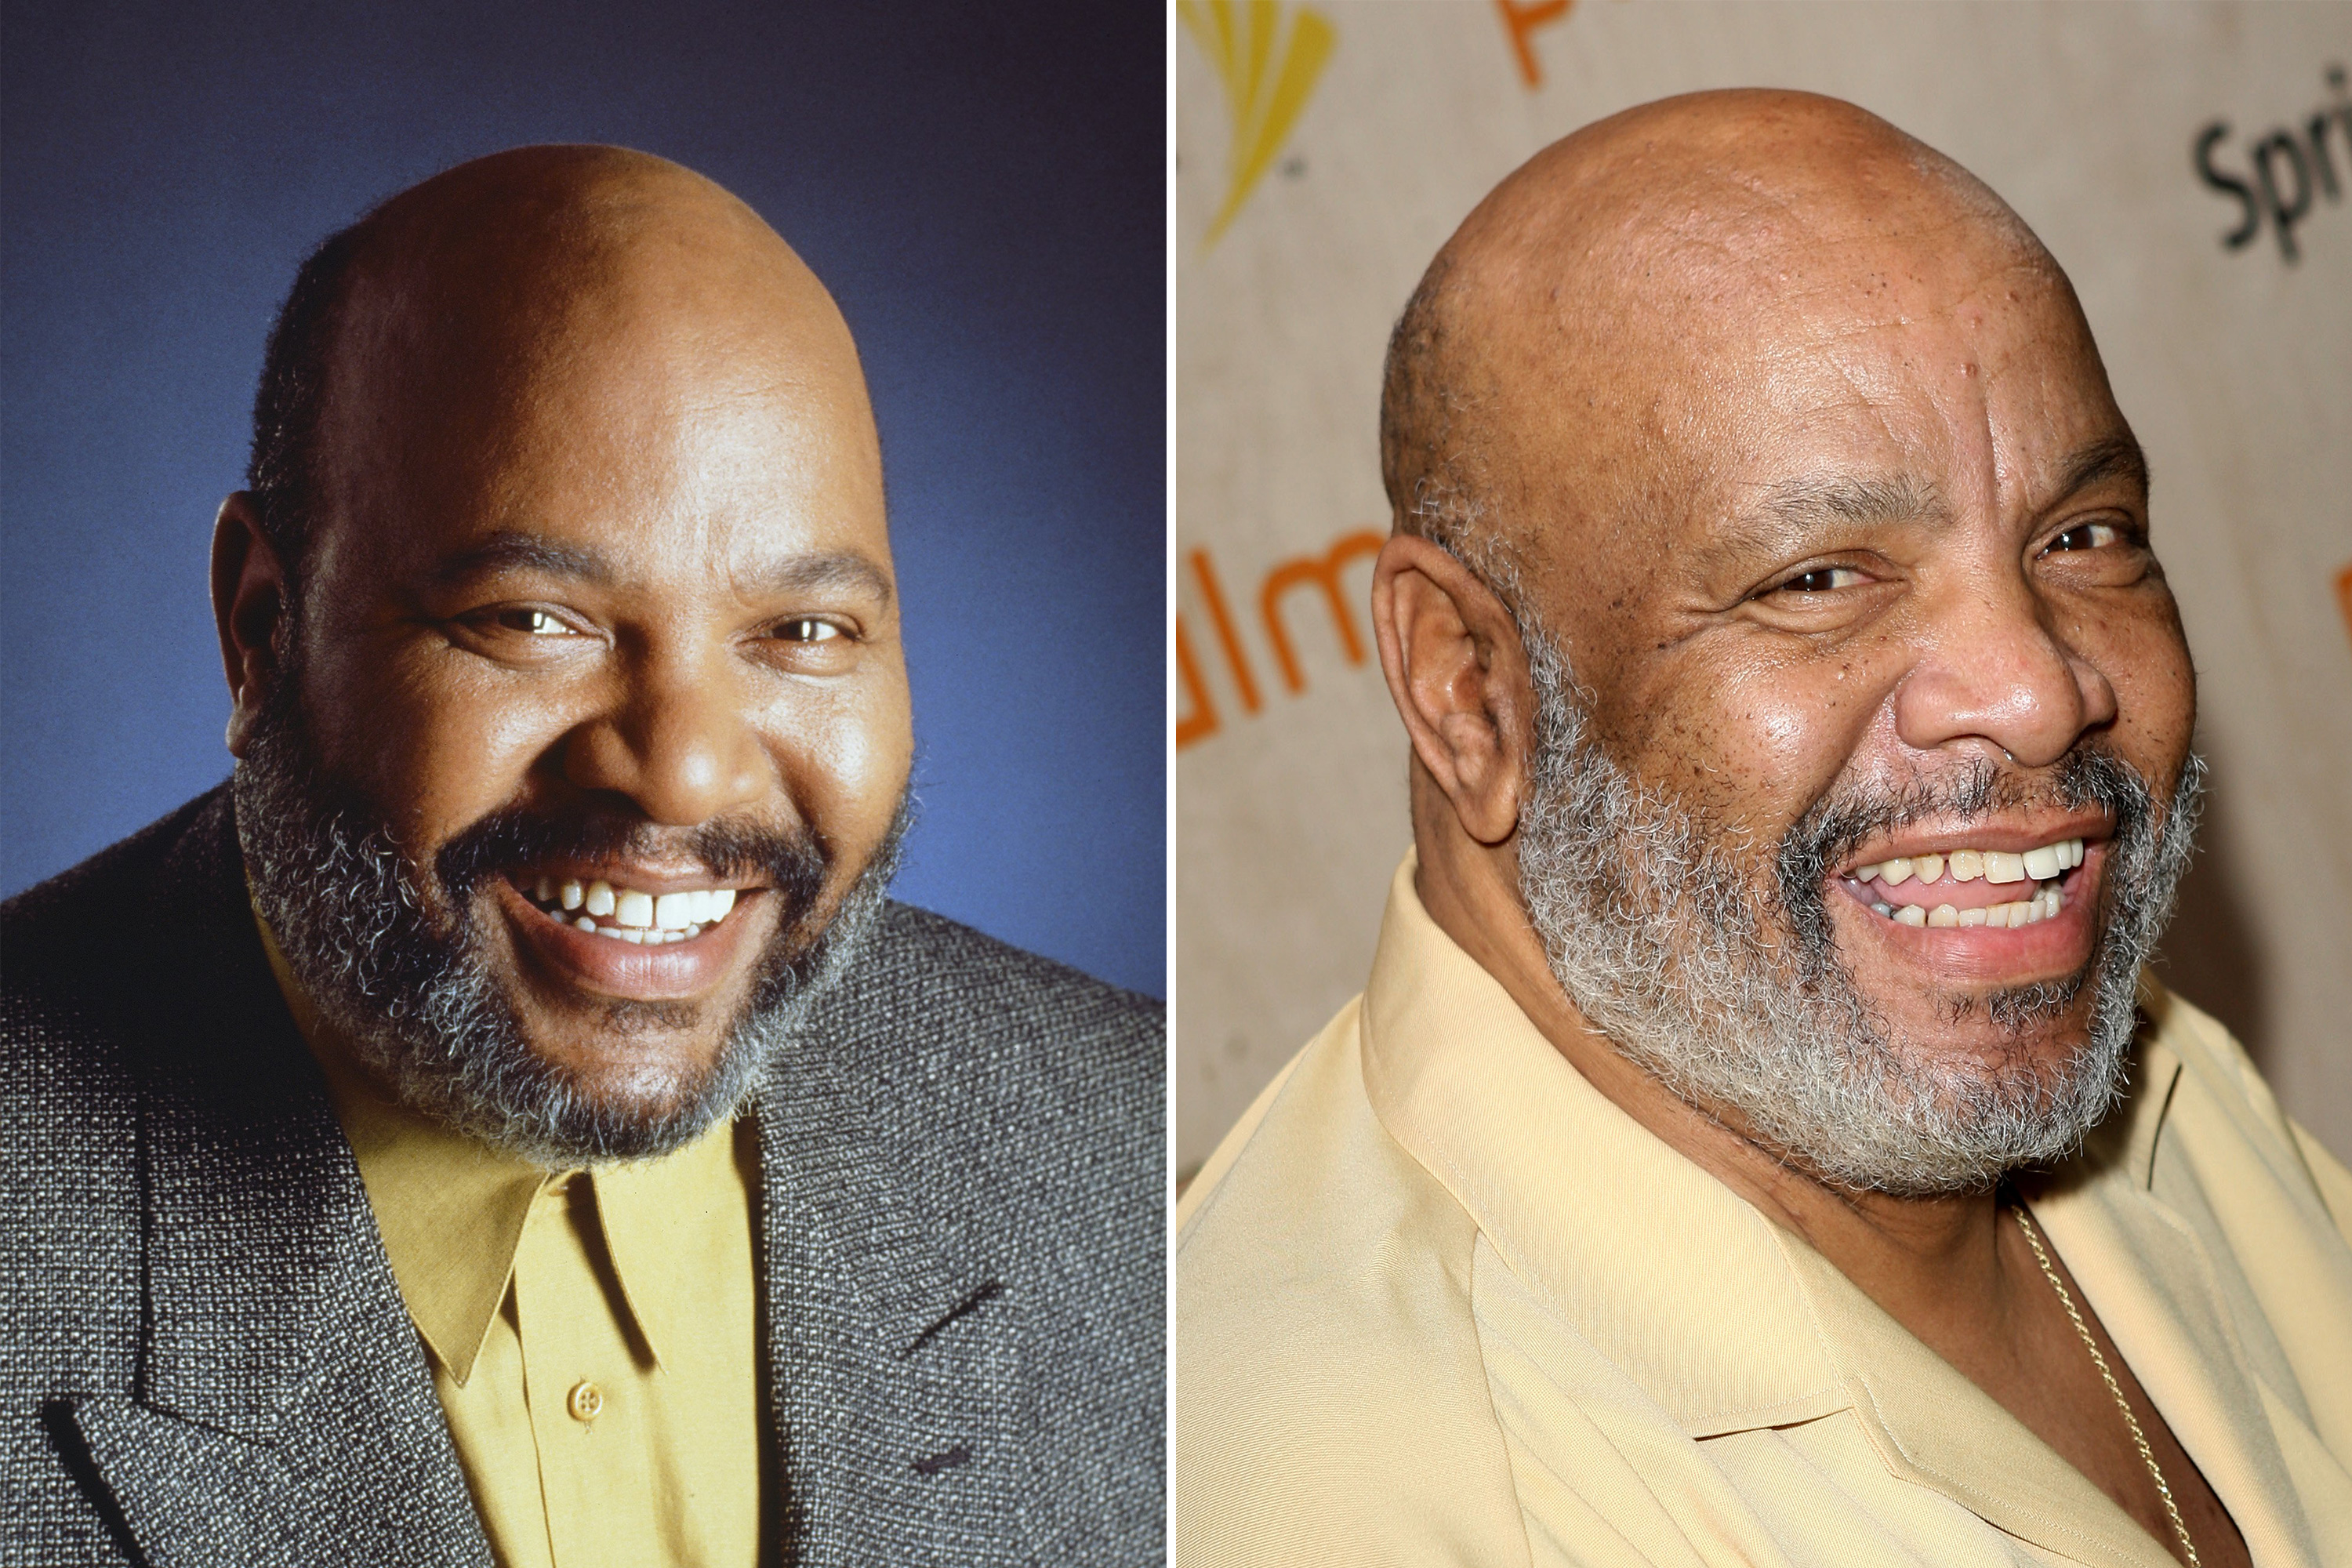 <b>James Avery</b>, who died in 2013, as <i>Philip Banks</i>